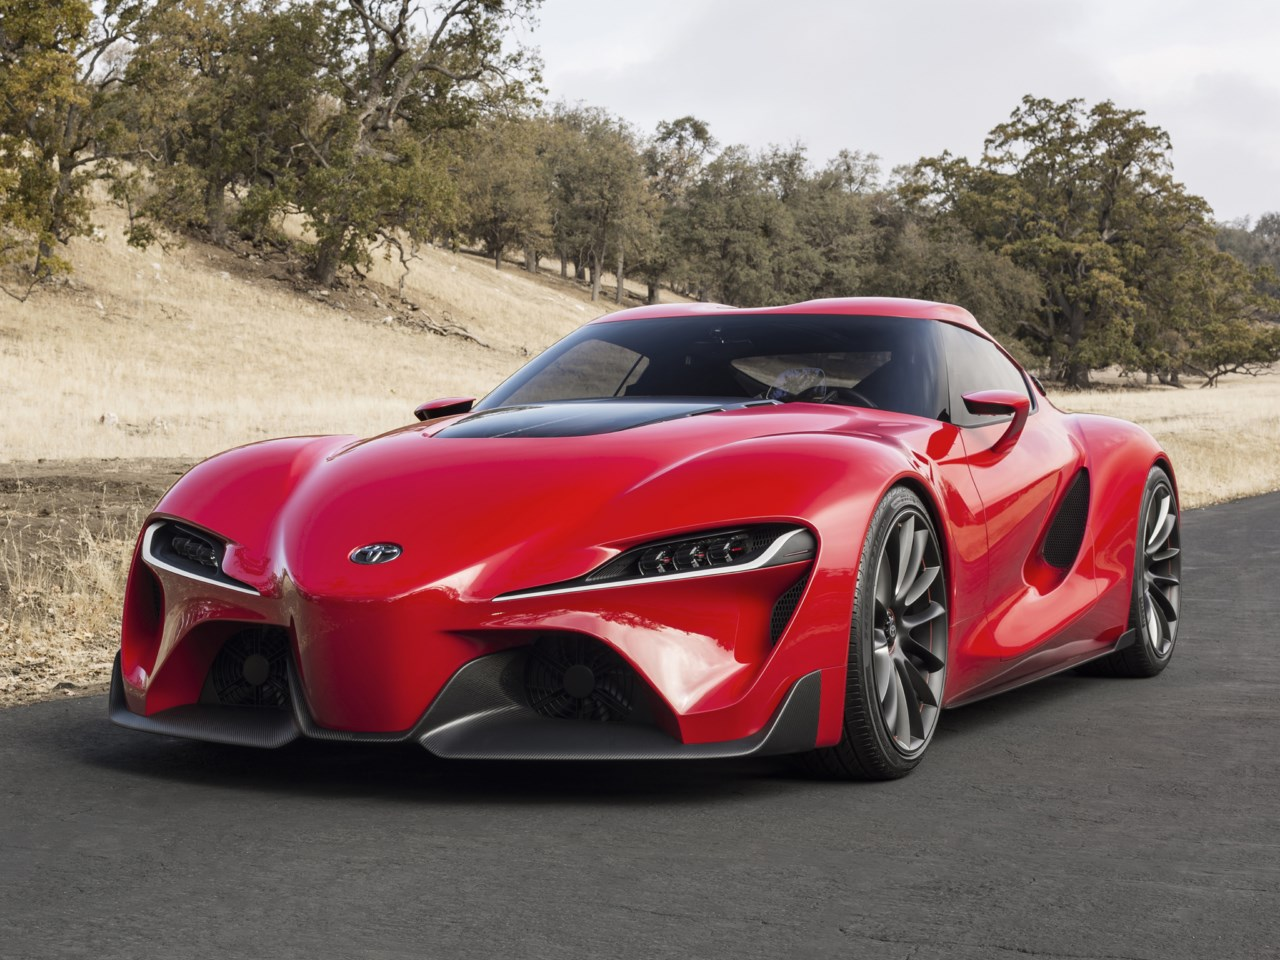 toyota-ft-1-concept-detroit-2014 (8)